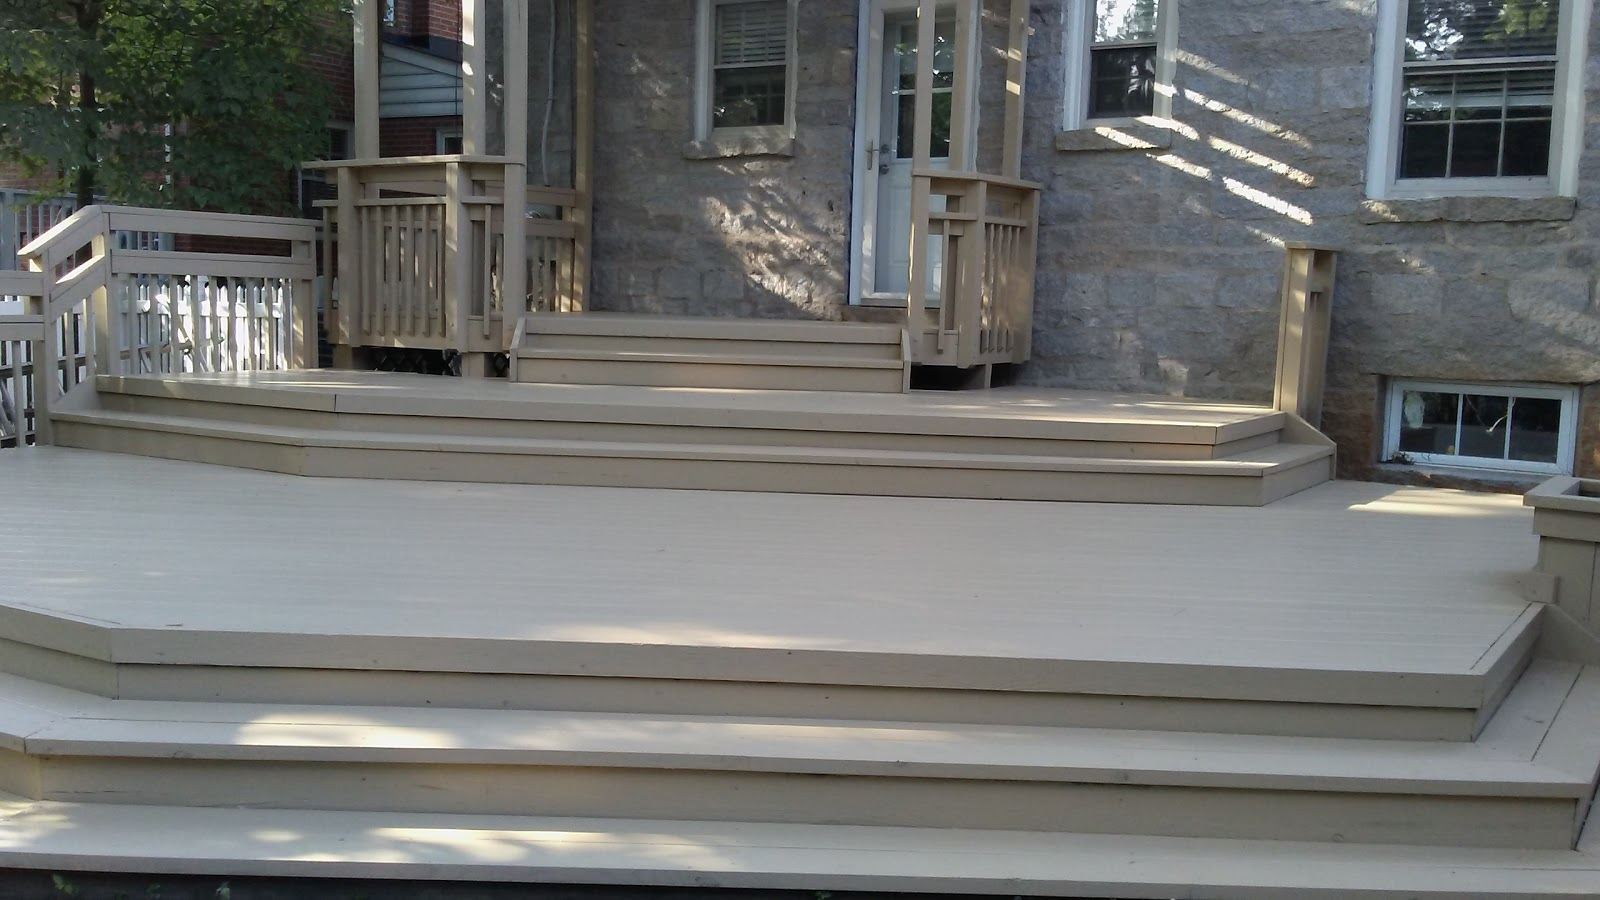 Southern Home Wood Deck Cleaning Driveway Cleaning And